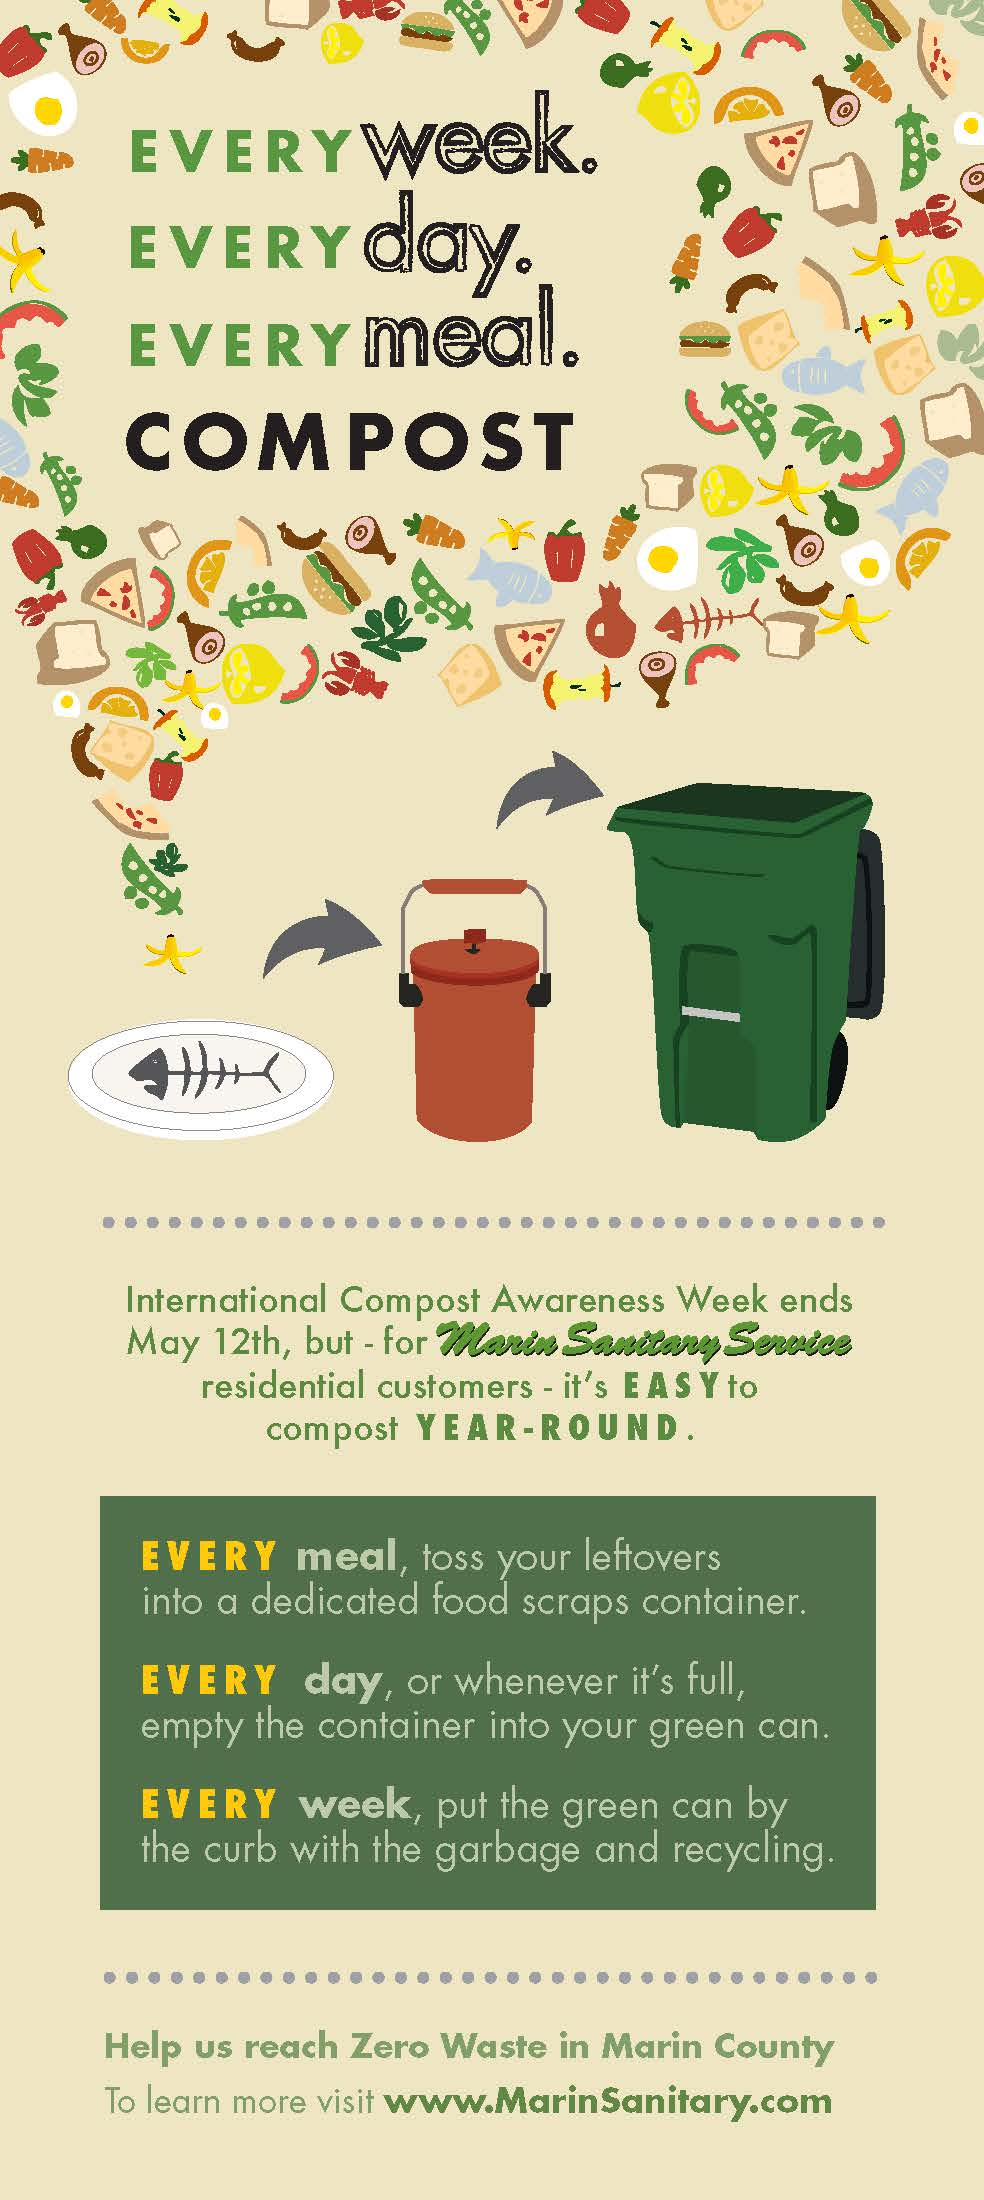 MSS - Compost Ad Campaign.jpg